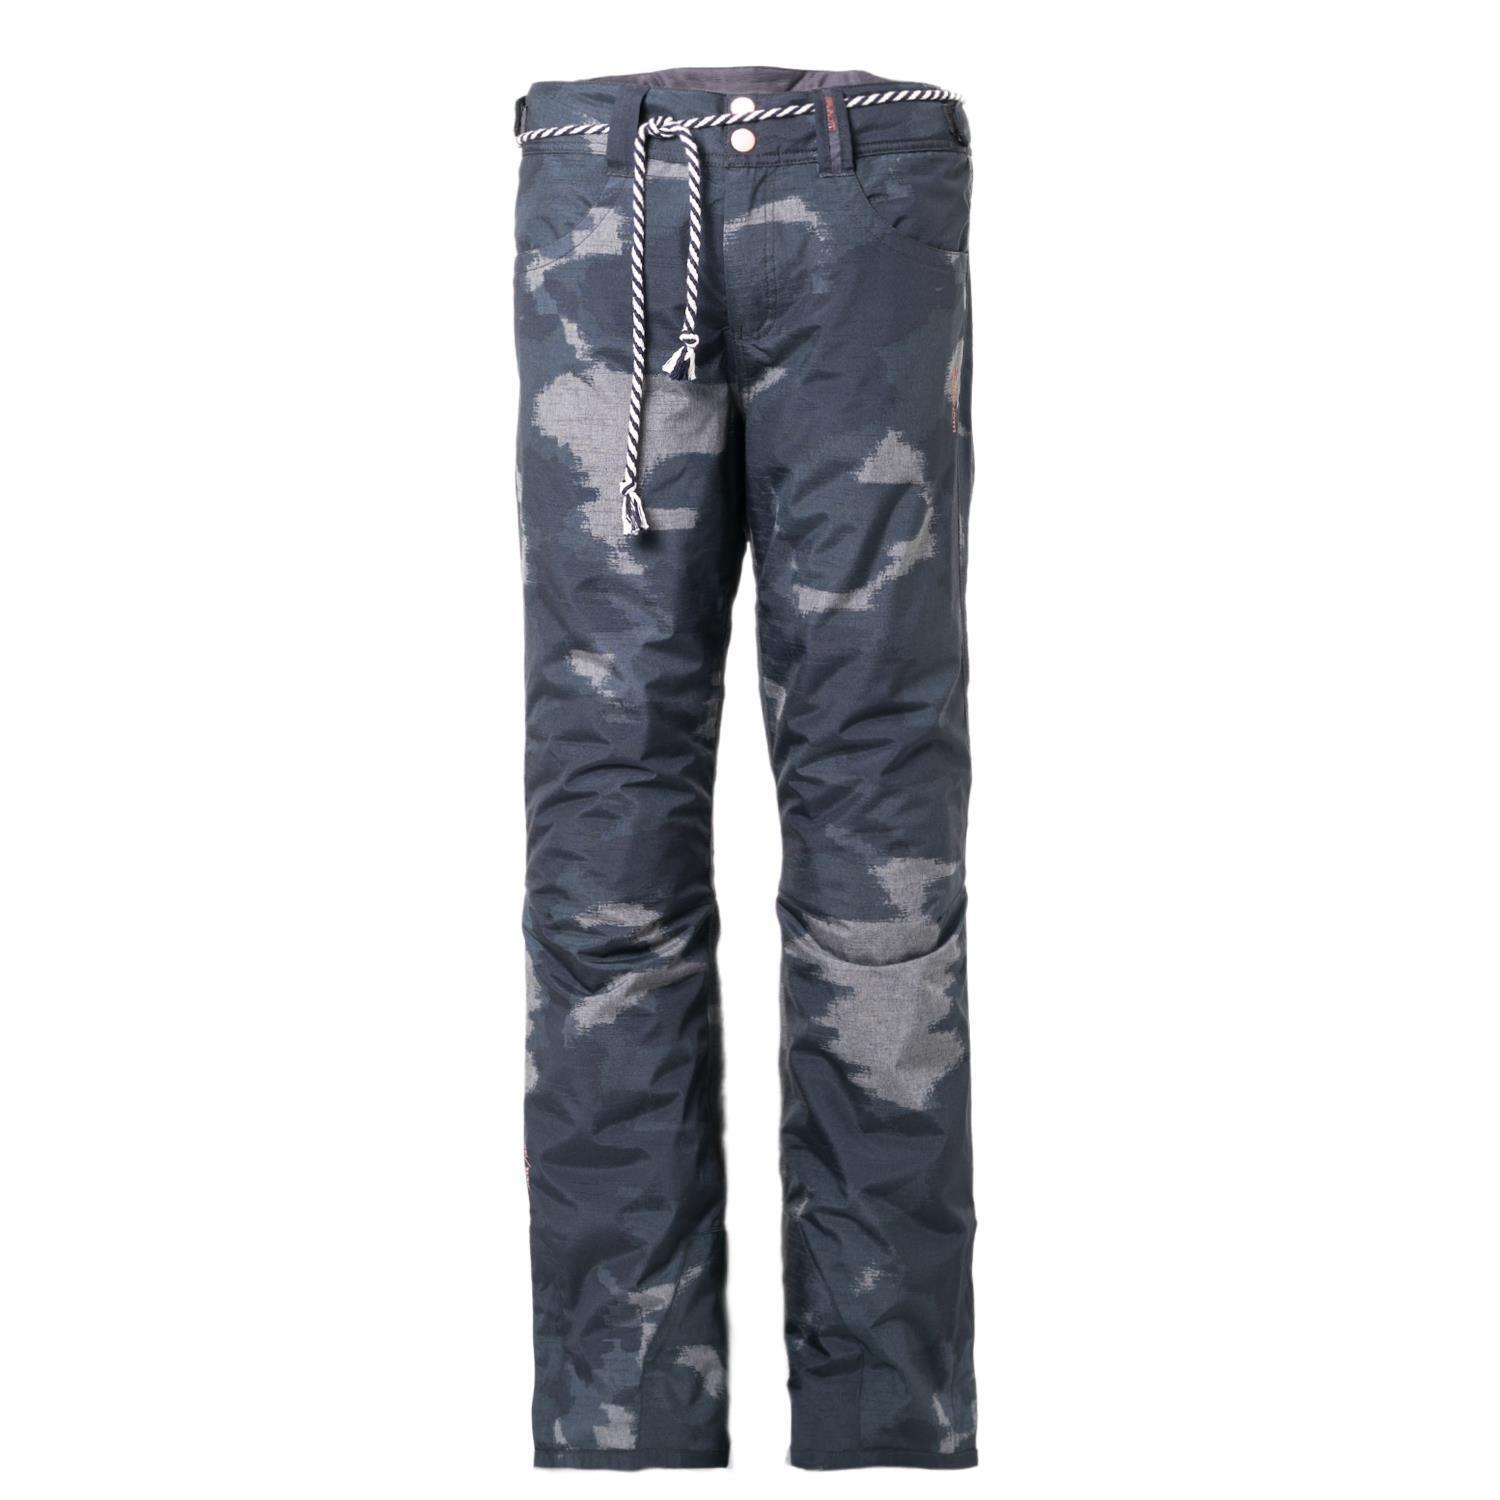 Brunotti Skihose  Snowboardhose Tauriel AO Women Snowpants dunkelblue  take up to 70% off